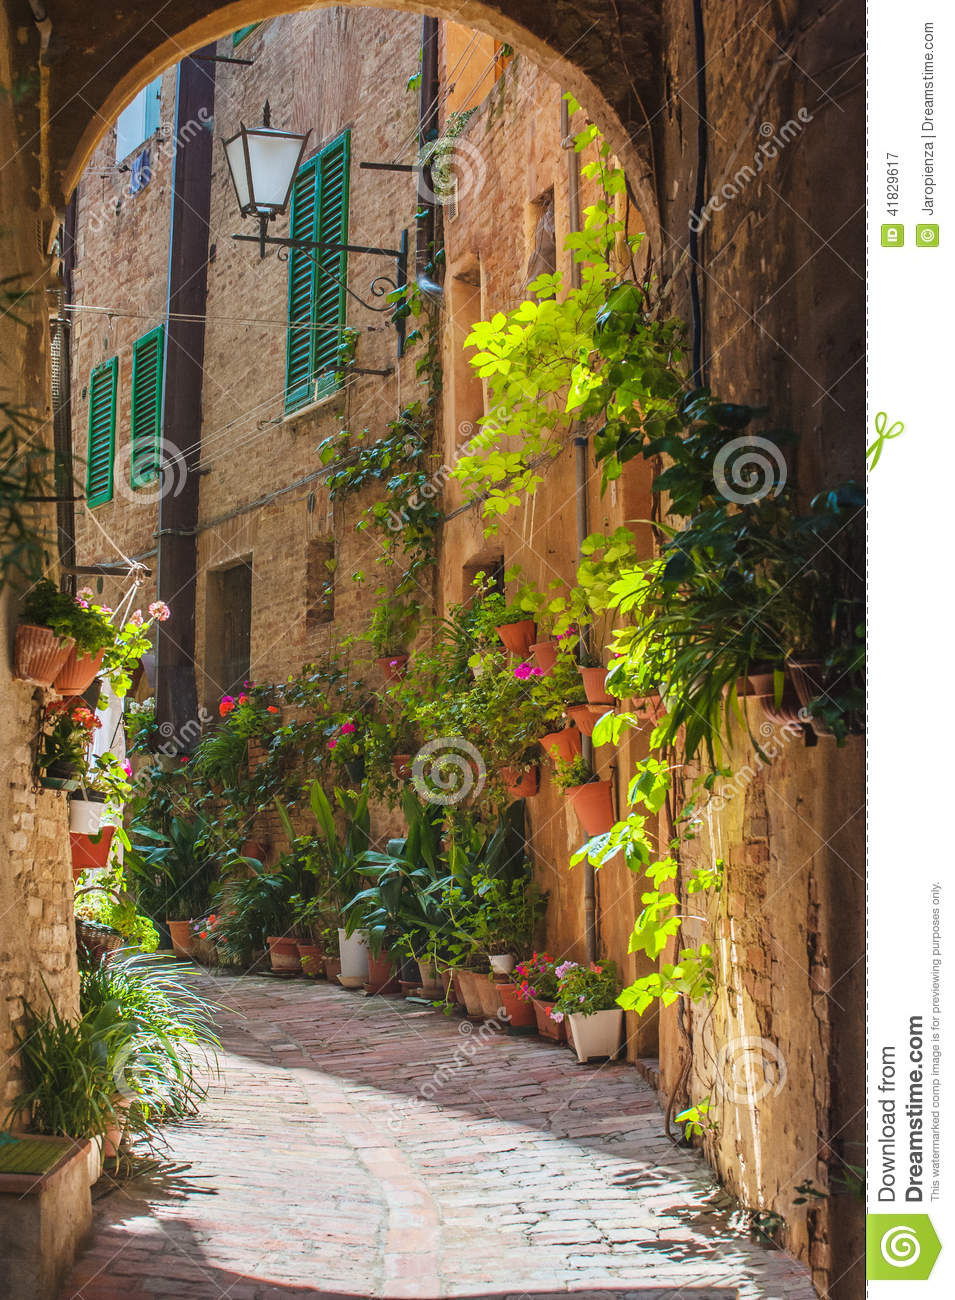 map of italian city states with Stock Photo Streets Old Italian City Siena Spring Image41829617 on Unification Of Italy And Germany together with History 14 as well New England In The Fall together with Maps Ancient And Medieval History furthermore Strawberry Hill Rummage Sale.